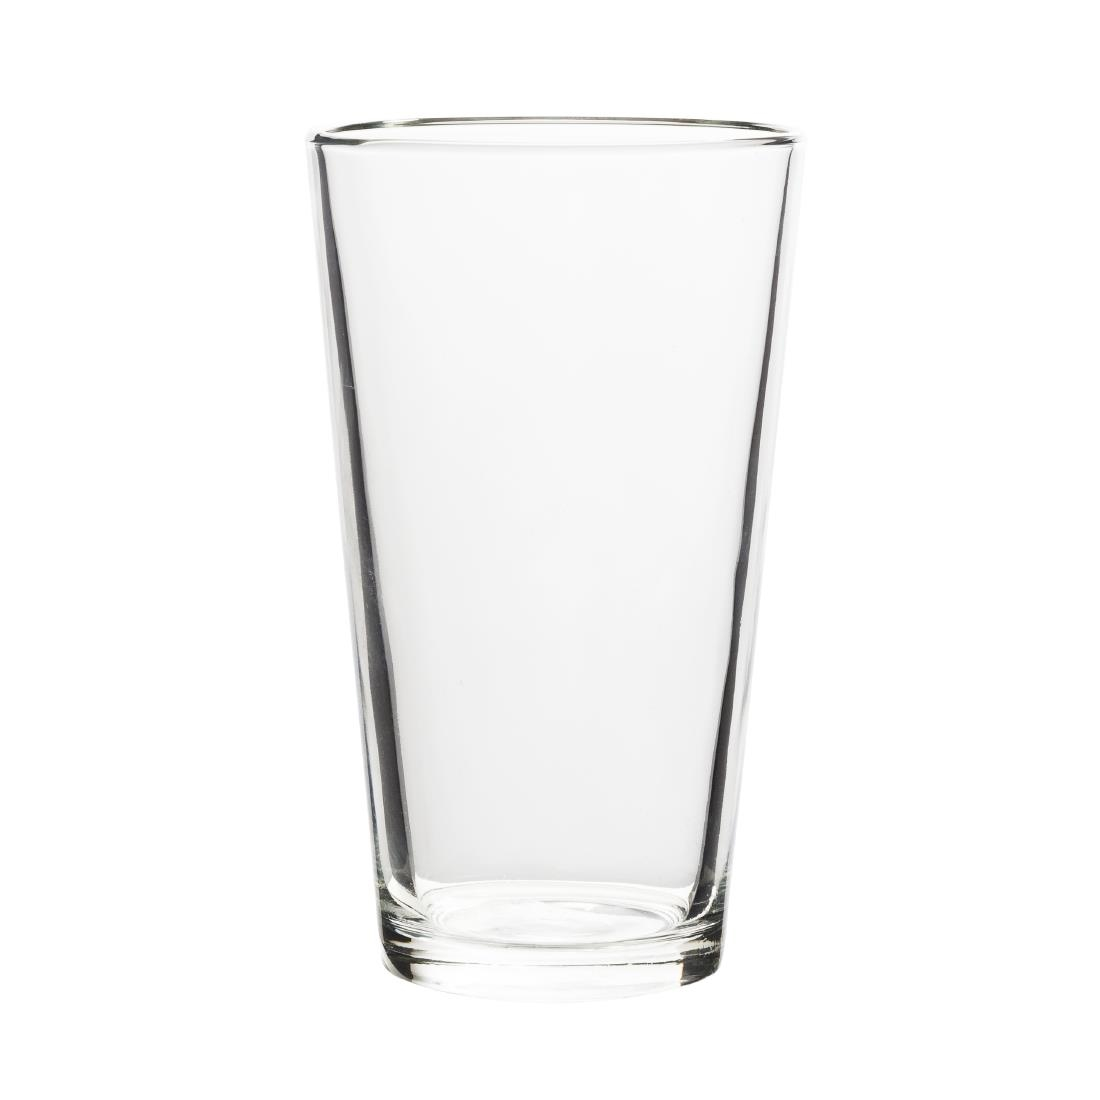 Image of Arcoroc Boston Shaker Glass (Pack of 12) Pack of 12